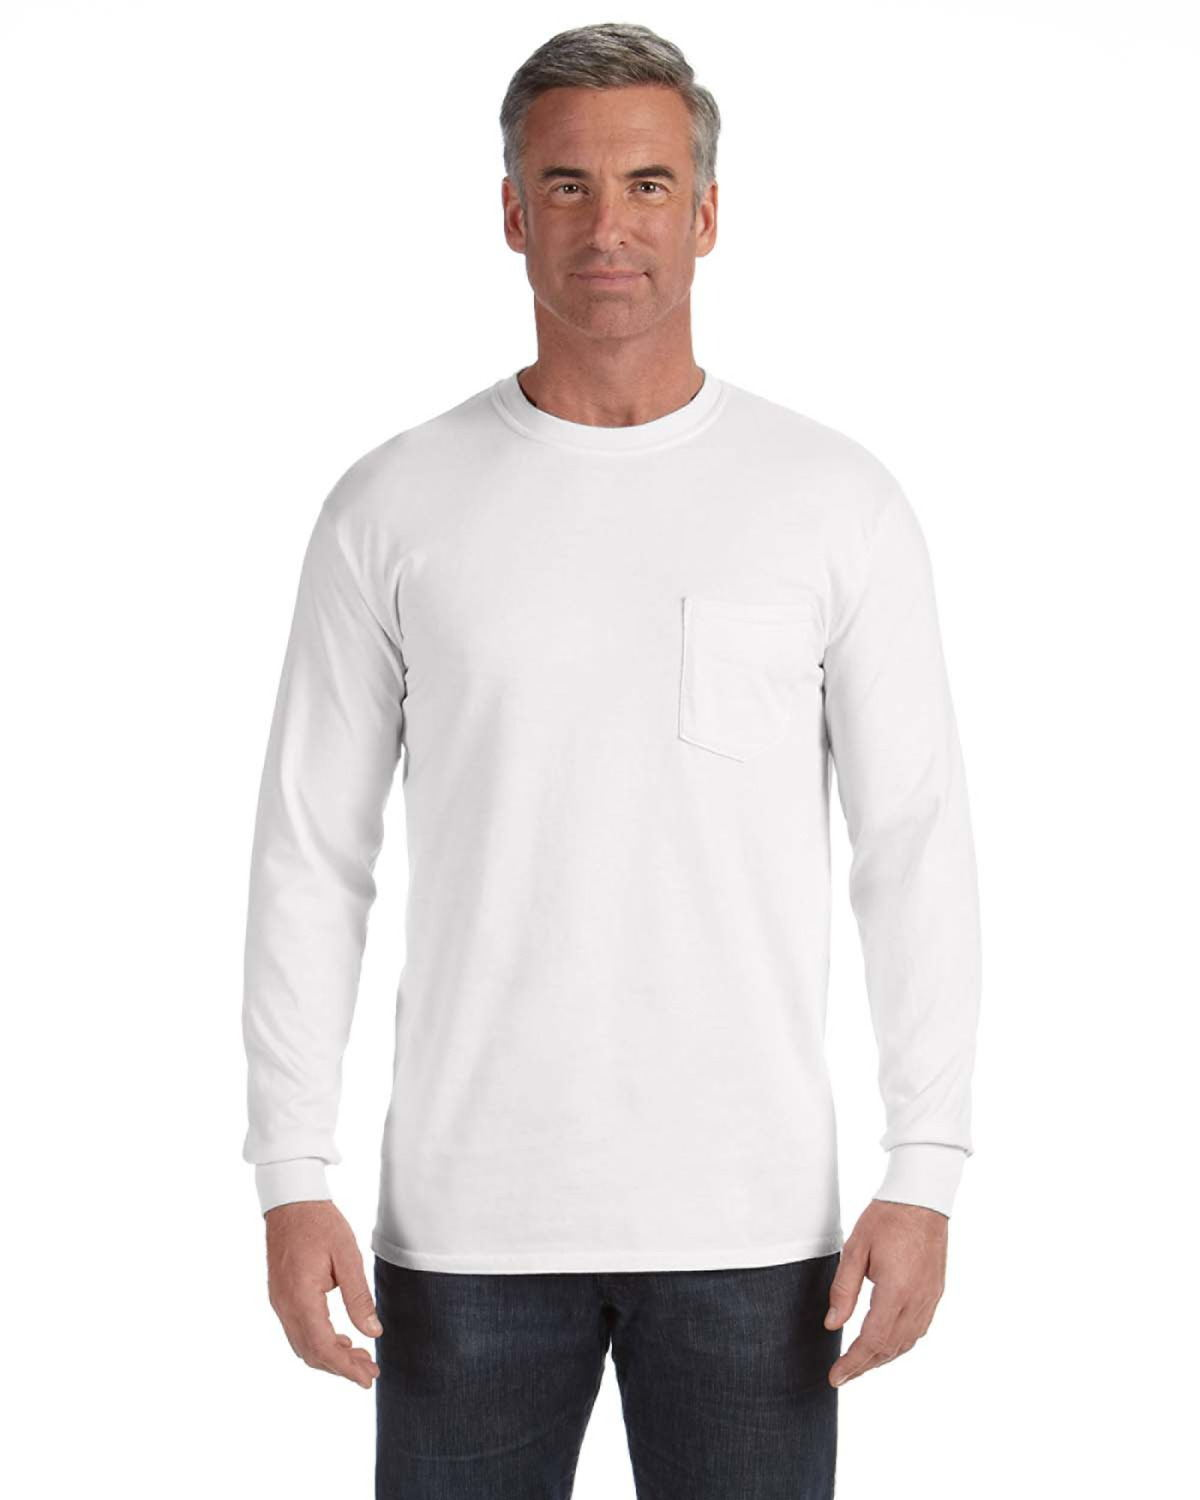 Comfort Colors C4410 - Long-Sleeve Pocket T-Shirt